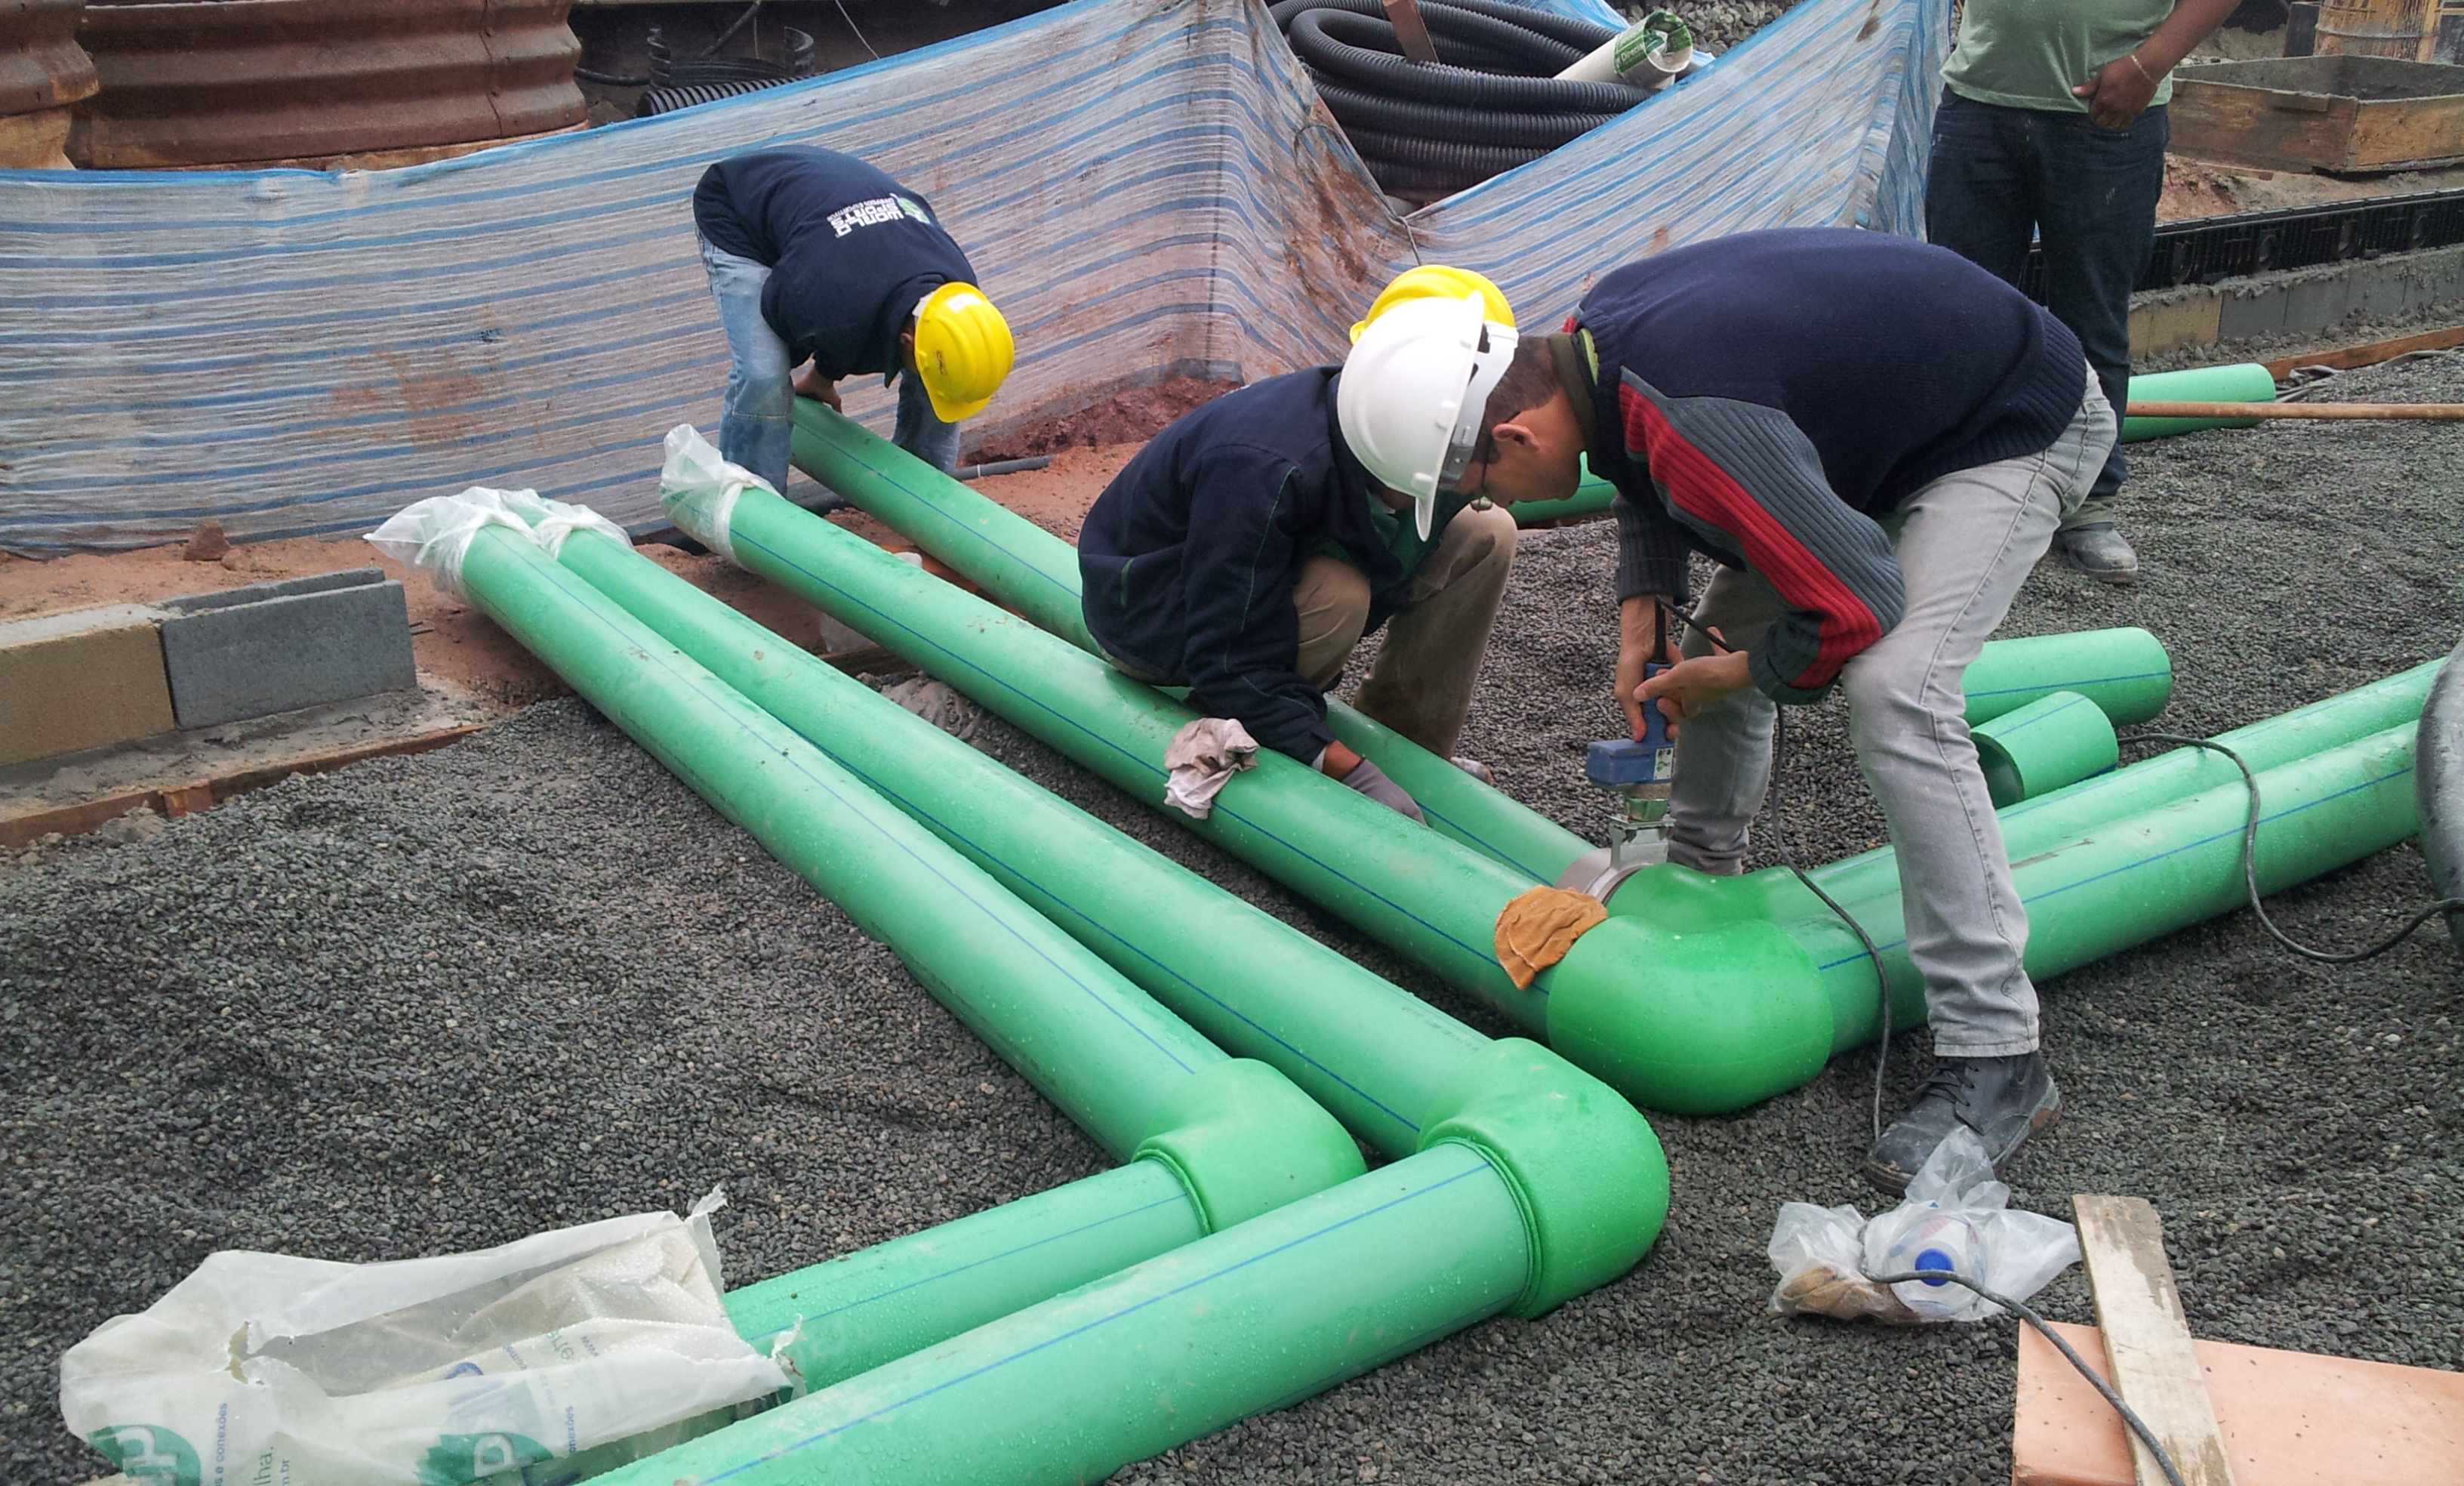 Hydronics pipes